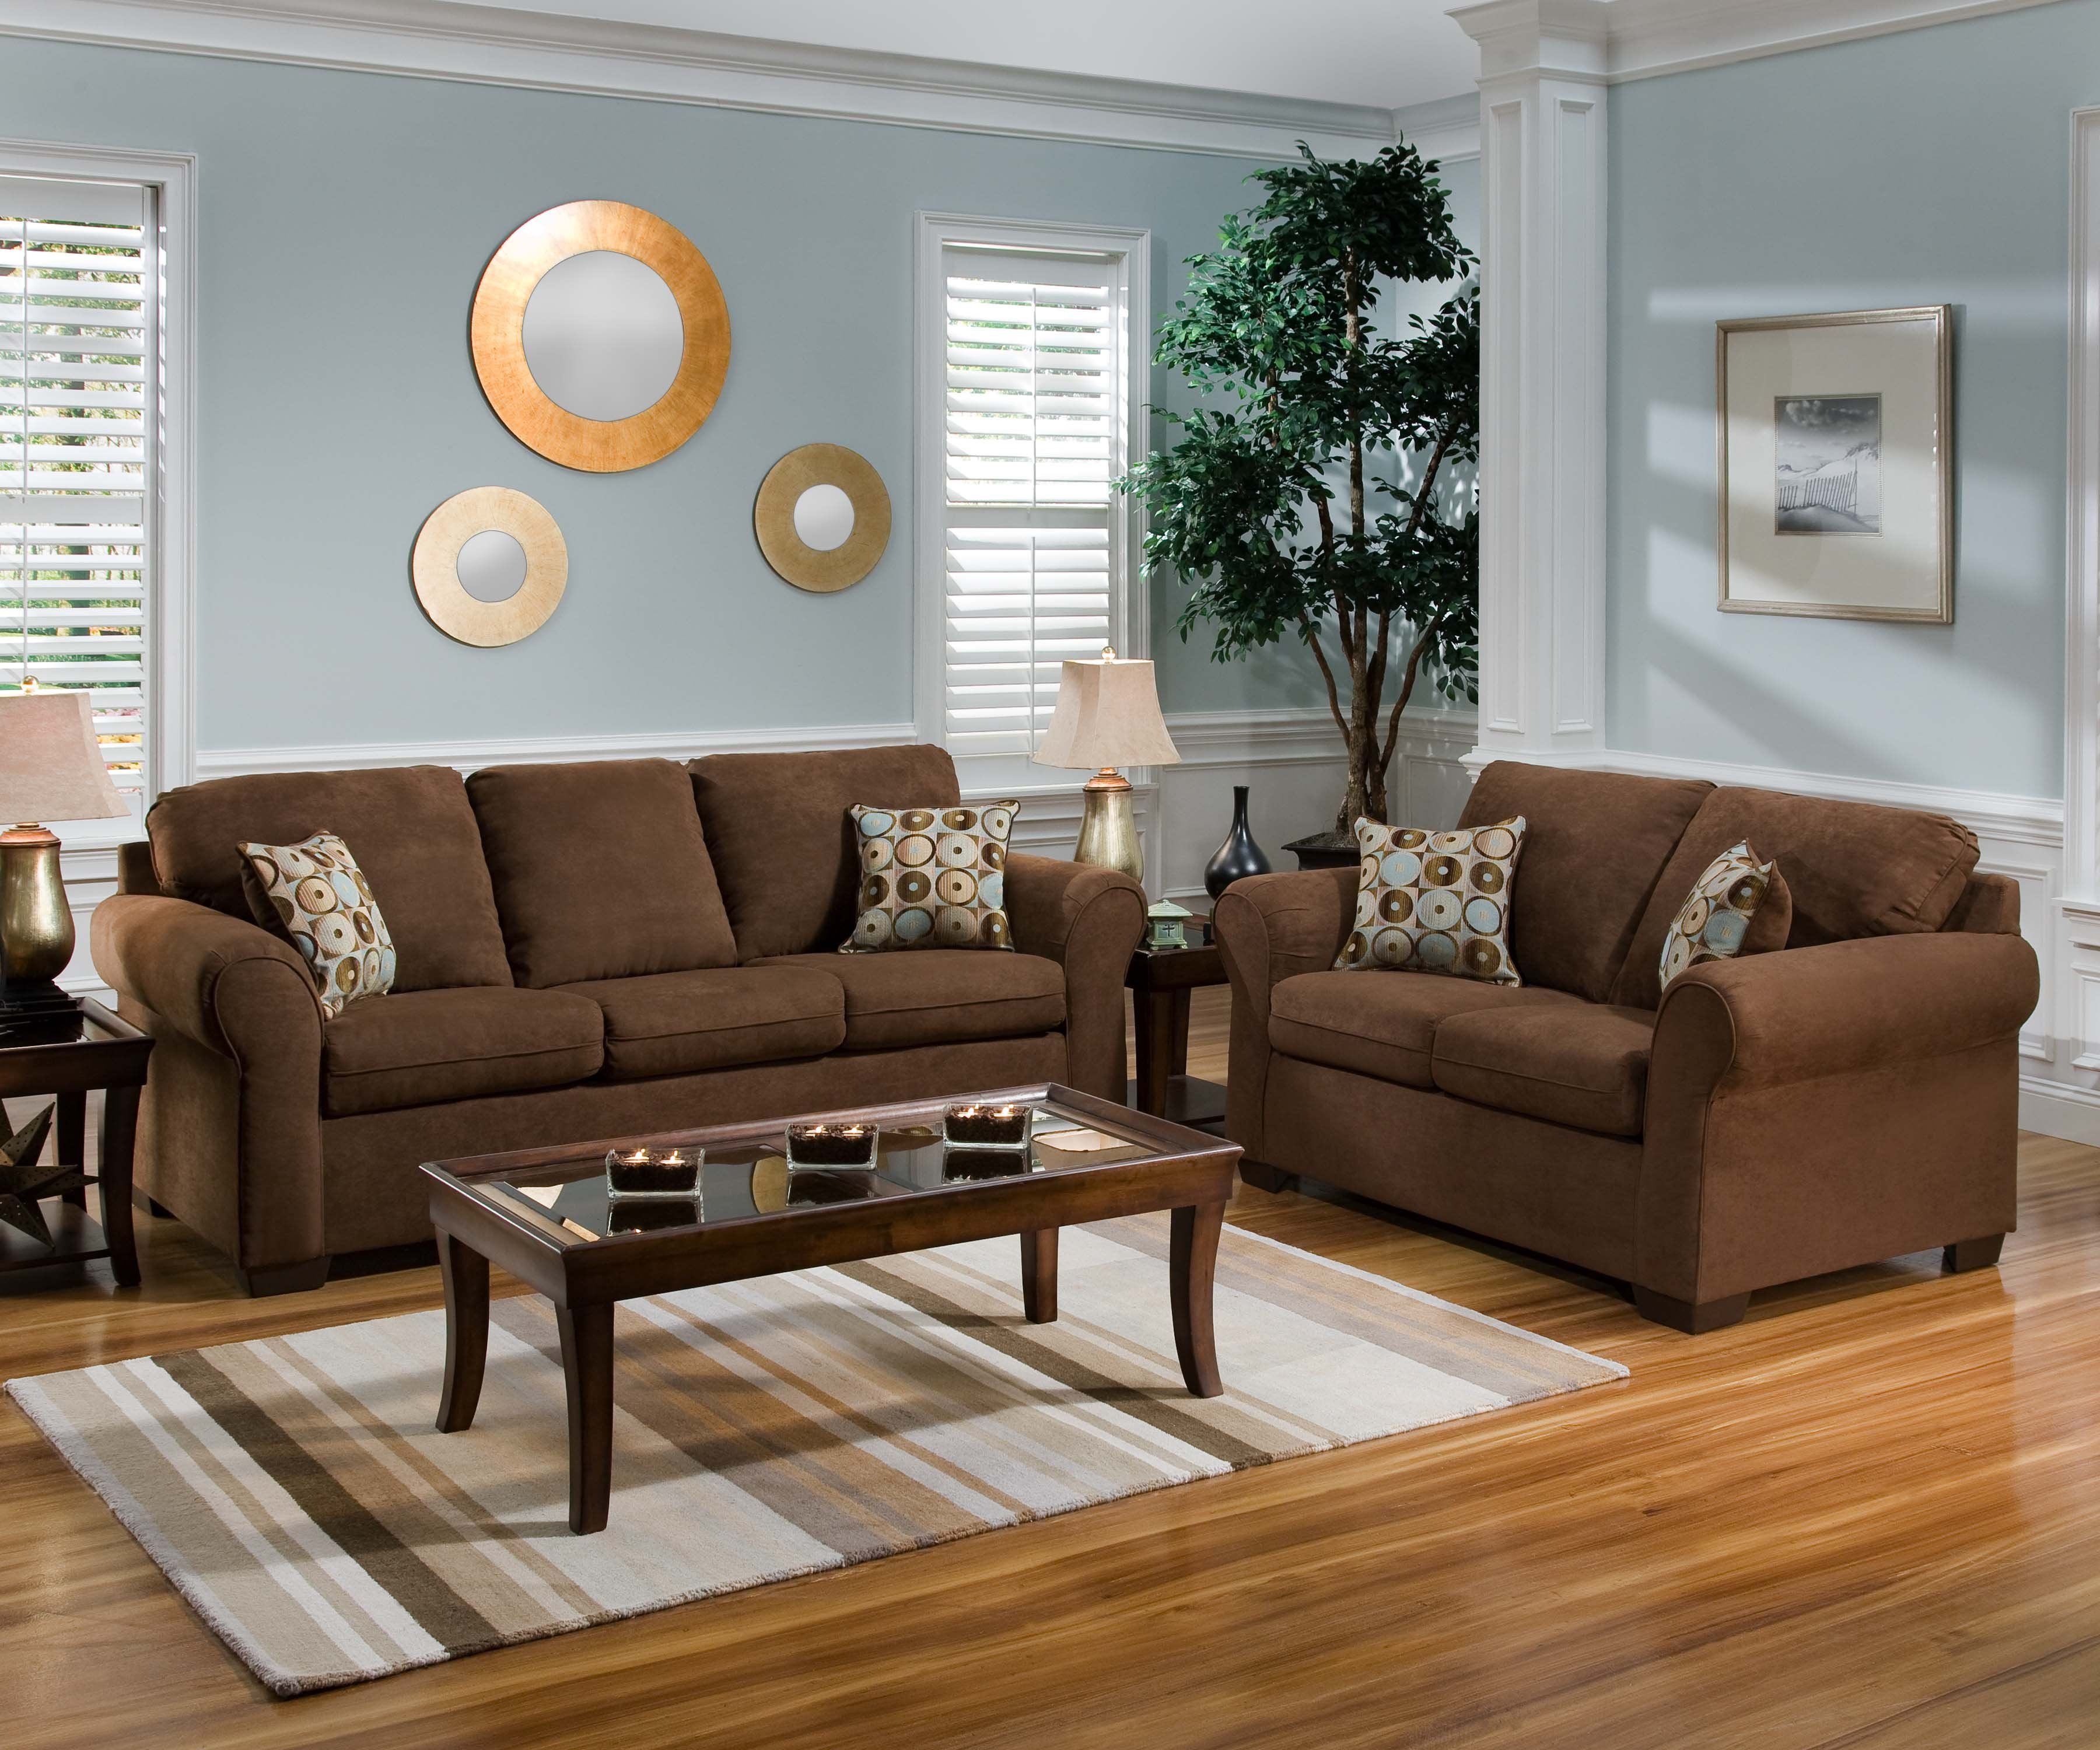 Cabot Red Sofa U0026 Love Seat Casual Living Room Furniture Set   Living Room  With Red Furniture | Furniture | Pinterest | Casual Living Rooms, ...